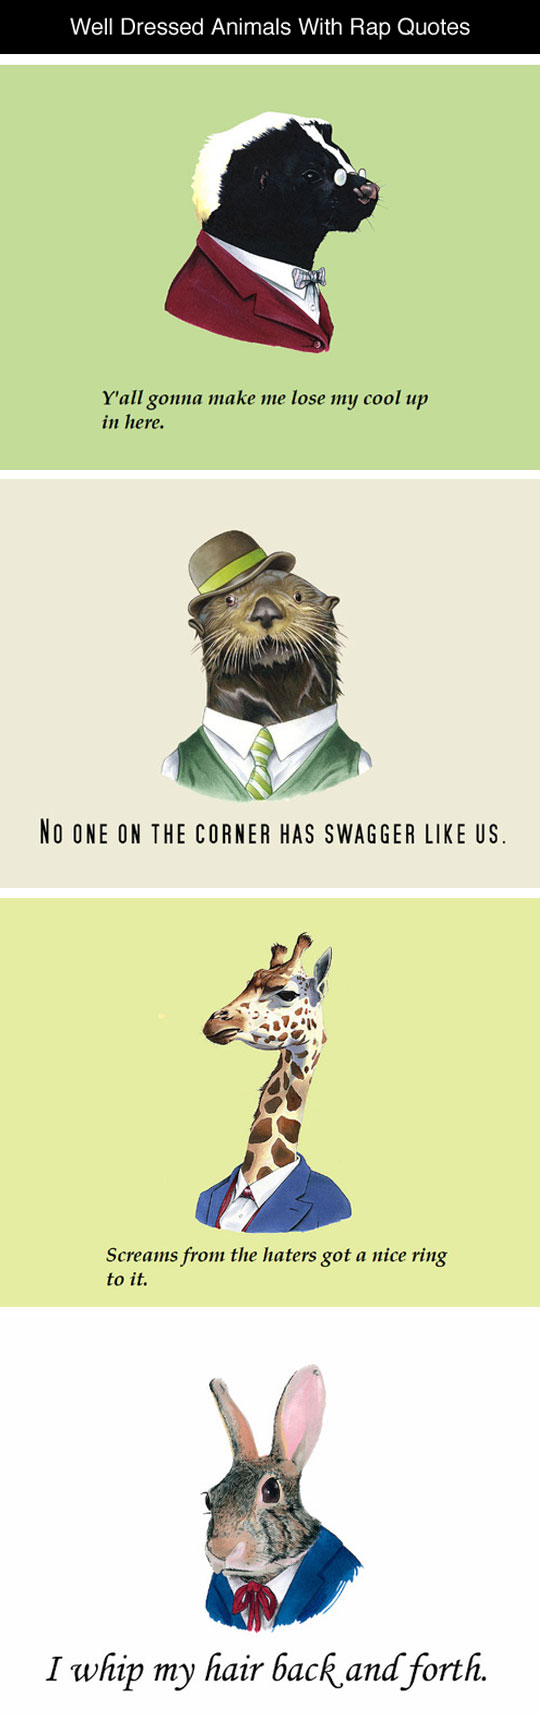 Well Dressed Animals With Quotes